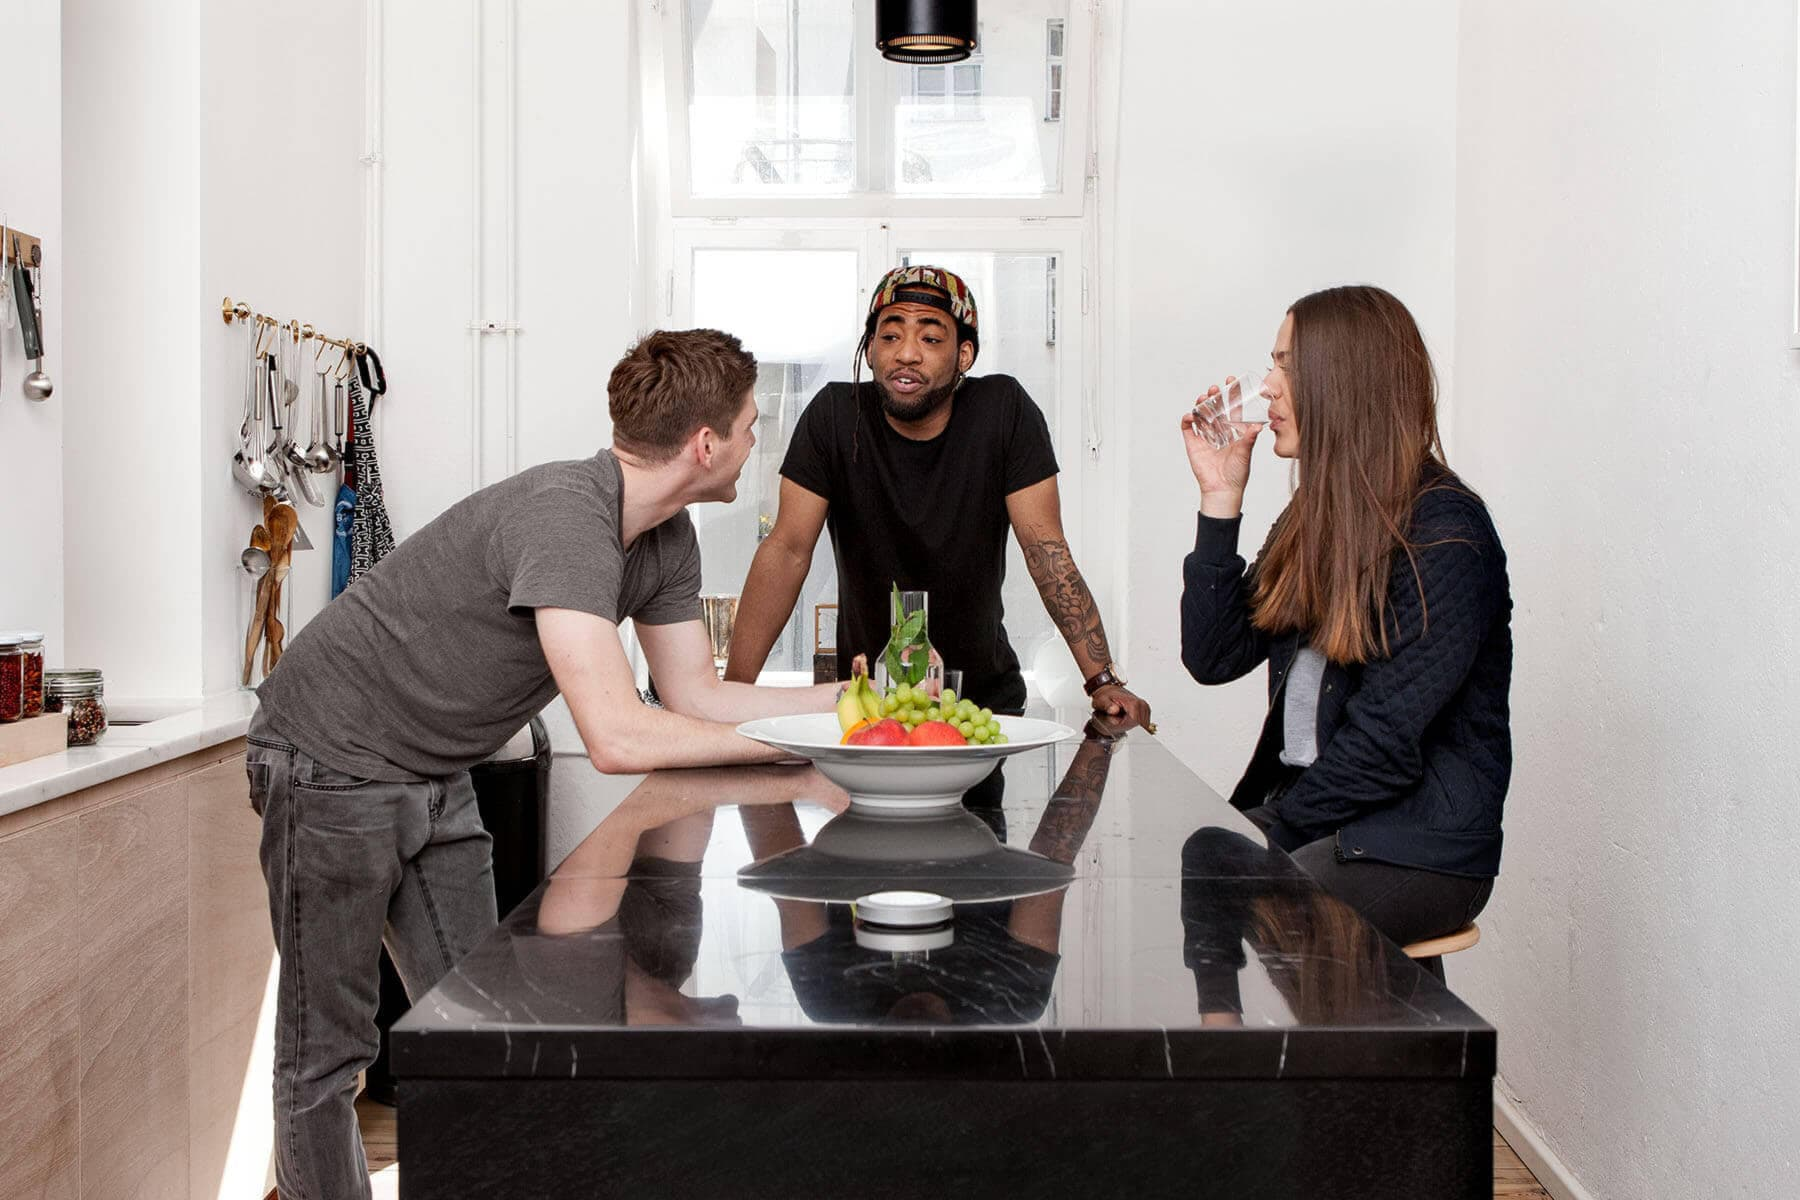 Nuimo grey on a marble kitchen table in a design apartment with 3 stylish people in the background